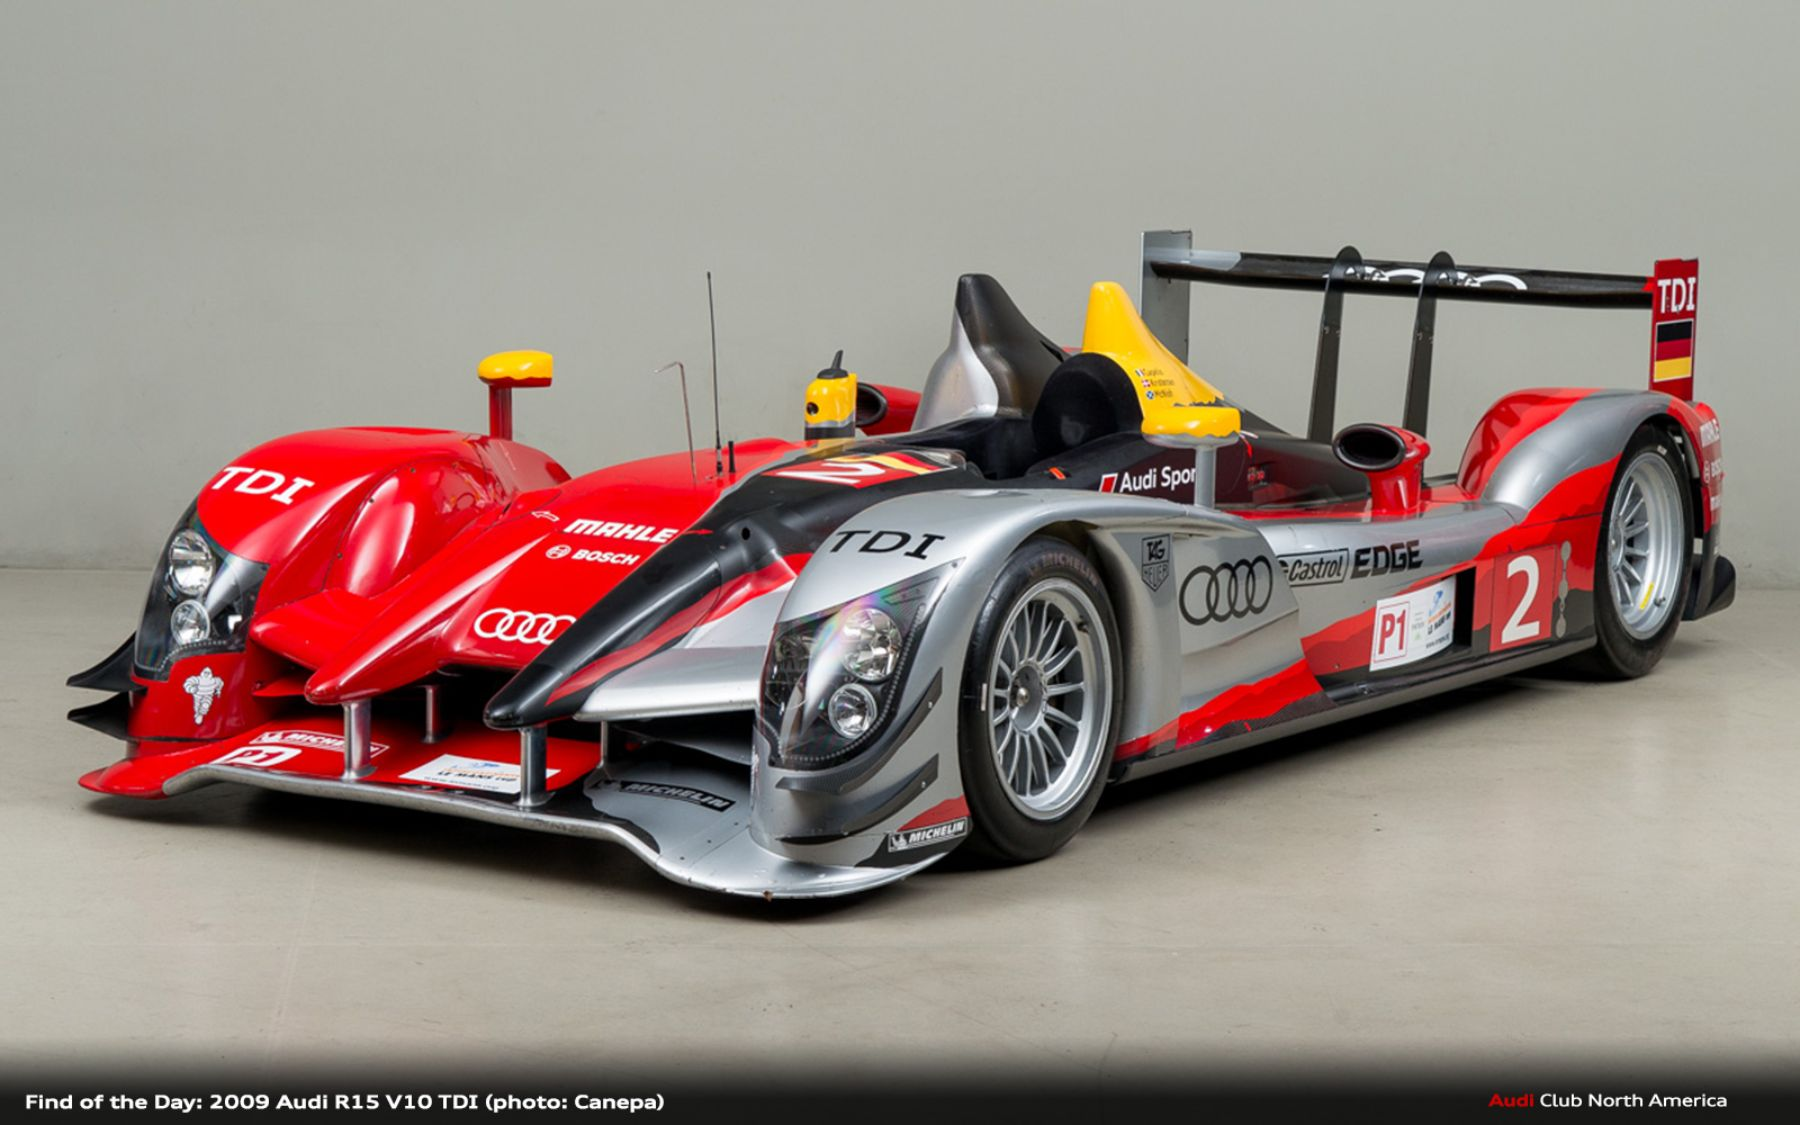 Find of the Day: 2009 Audi R15 V10 TDI Chassis T 101